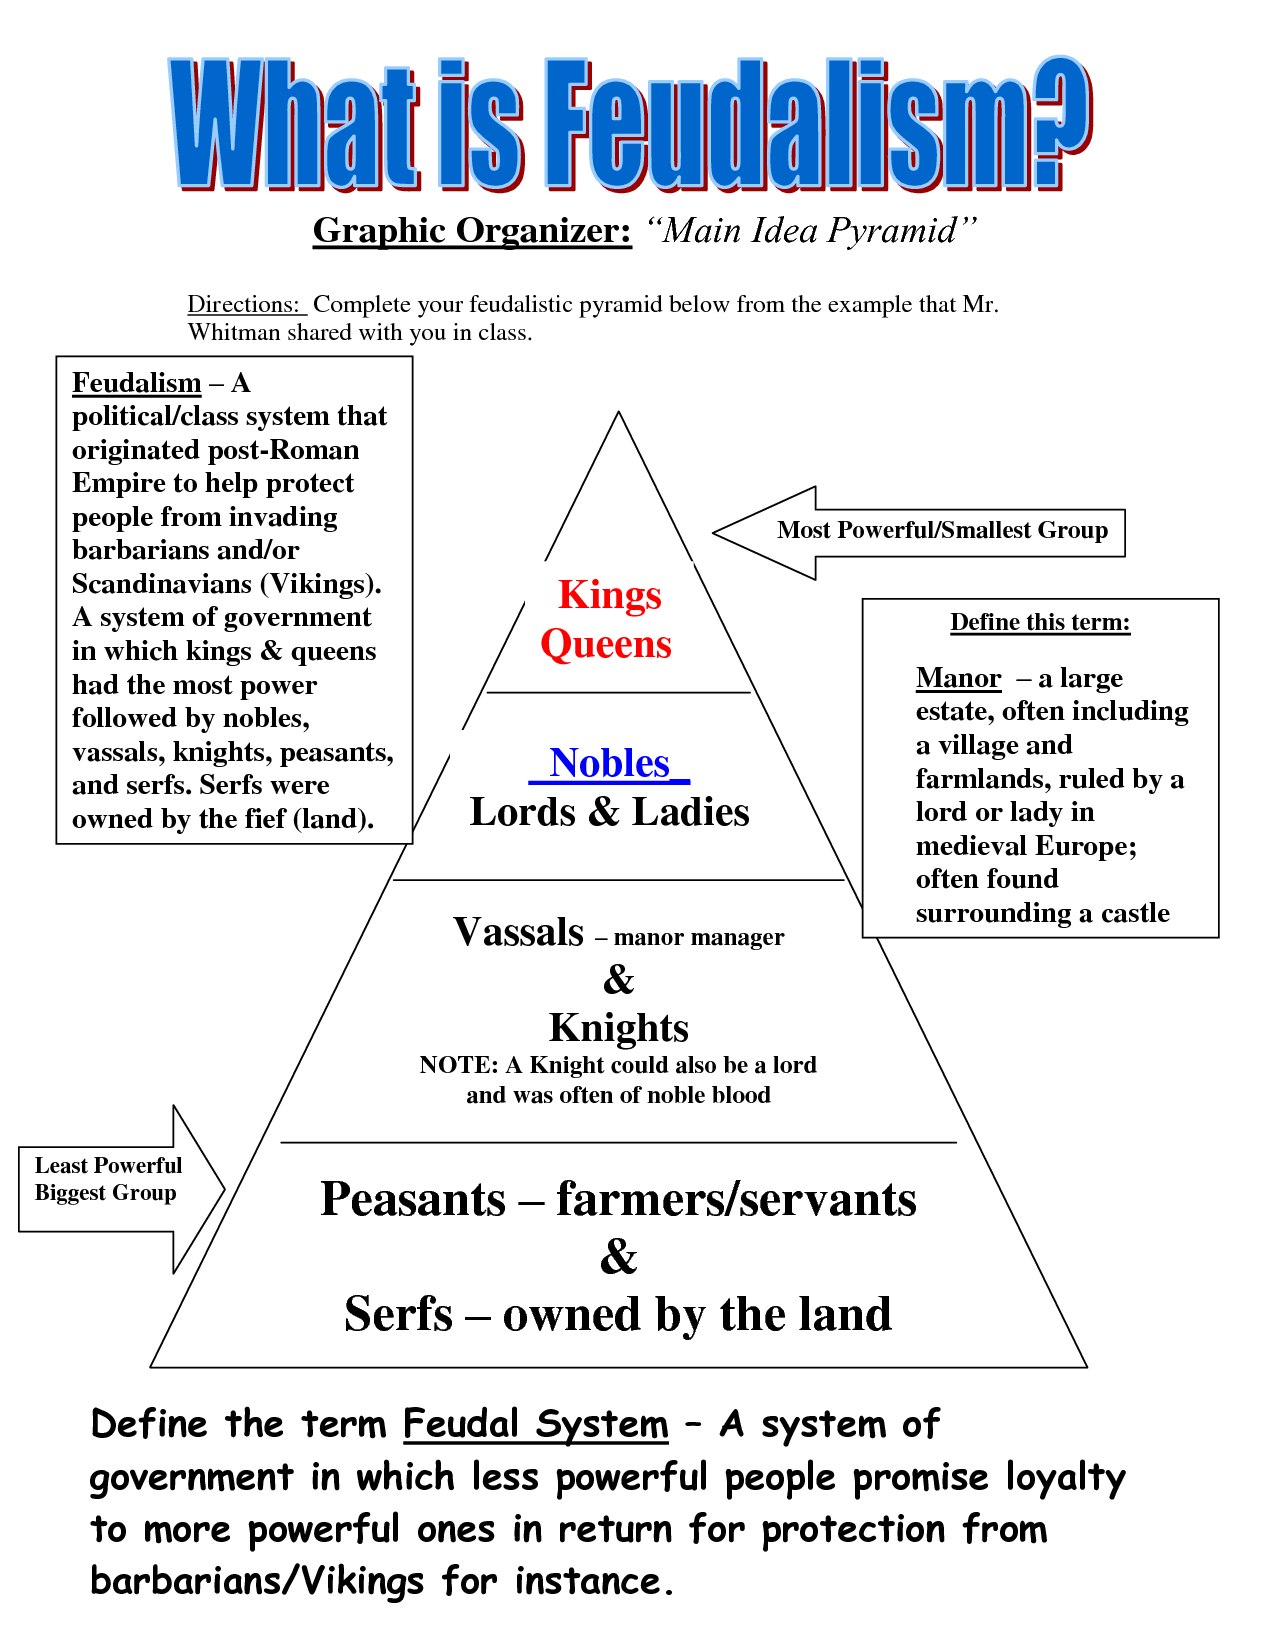 What Is Feudalism Graphic Organizer